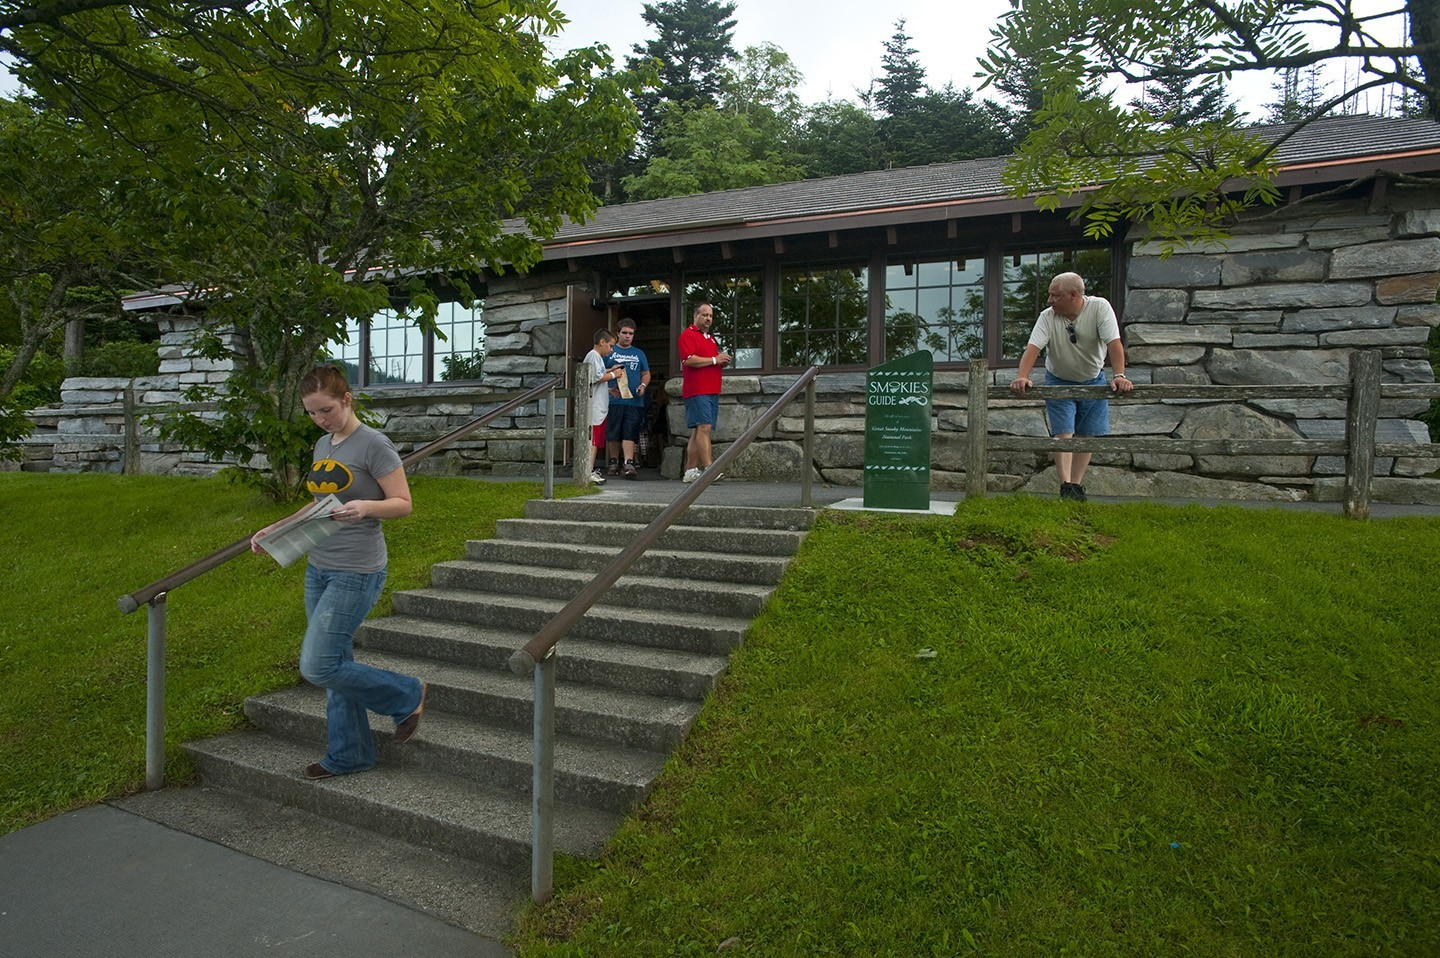 Clingmans Dome Visitor Center to host public Open House